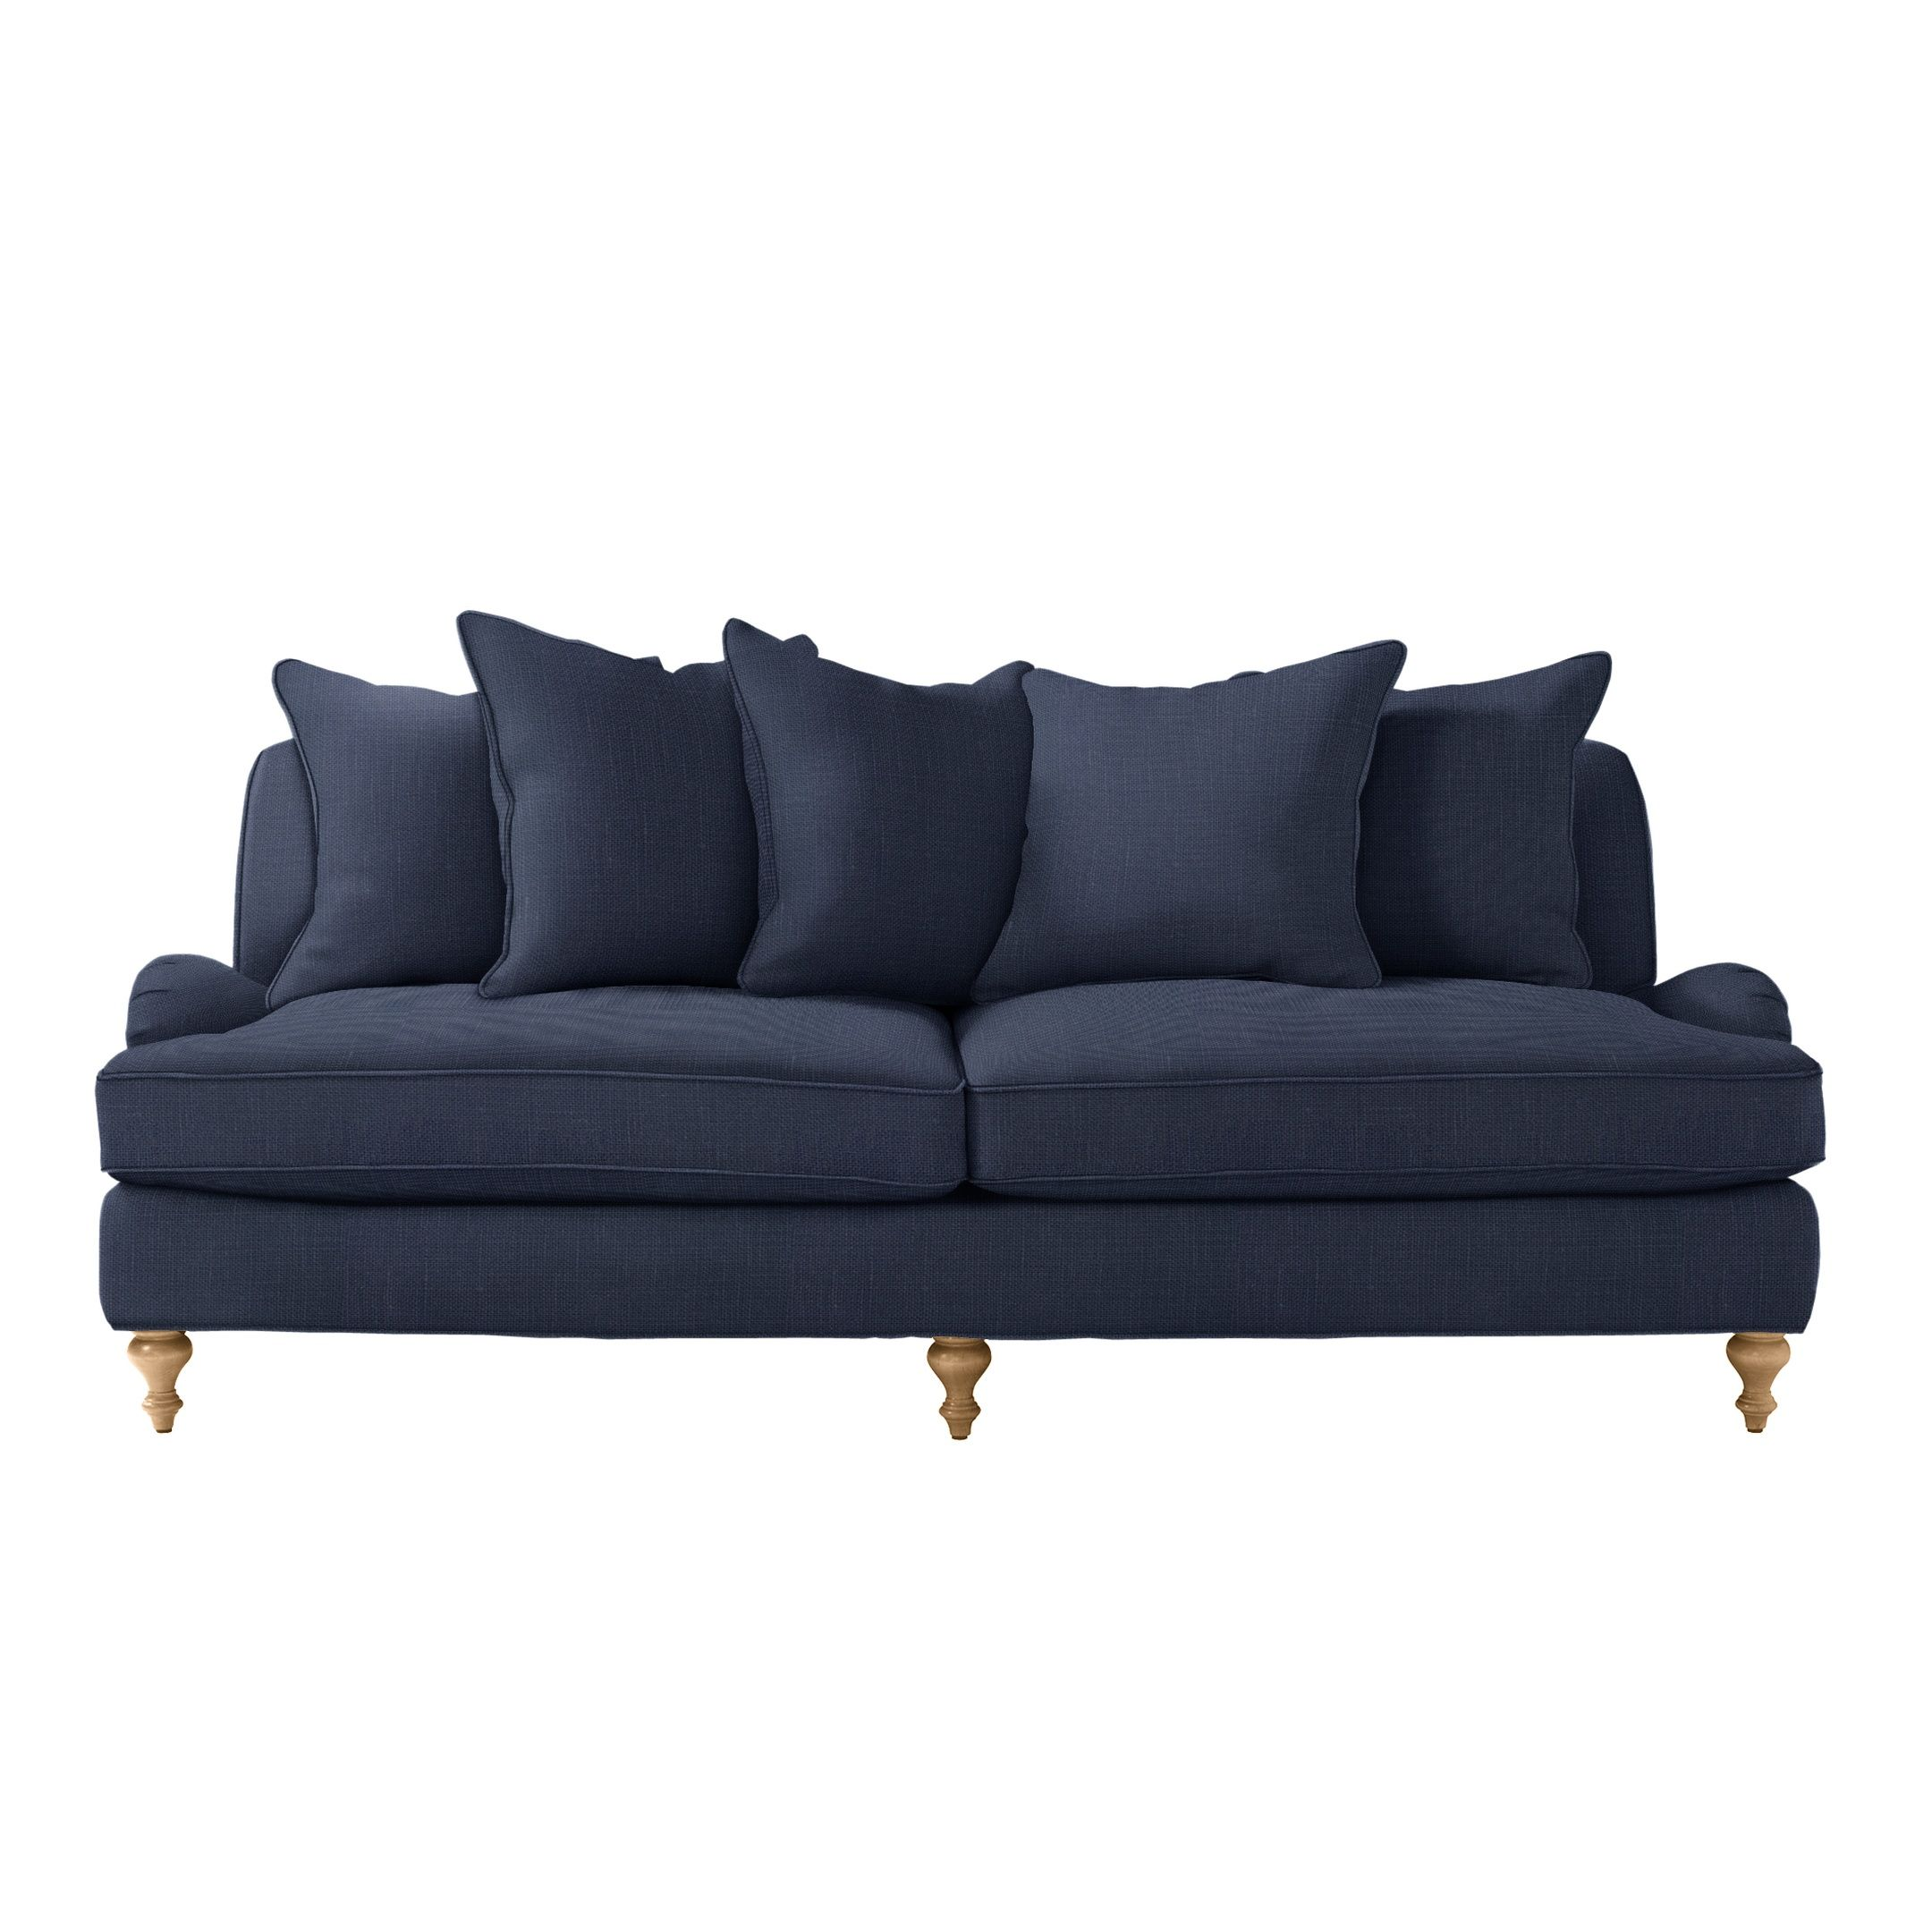 Beautiful Miramar Sofa In Dark Chambray Linen / Serena U0026 Lily